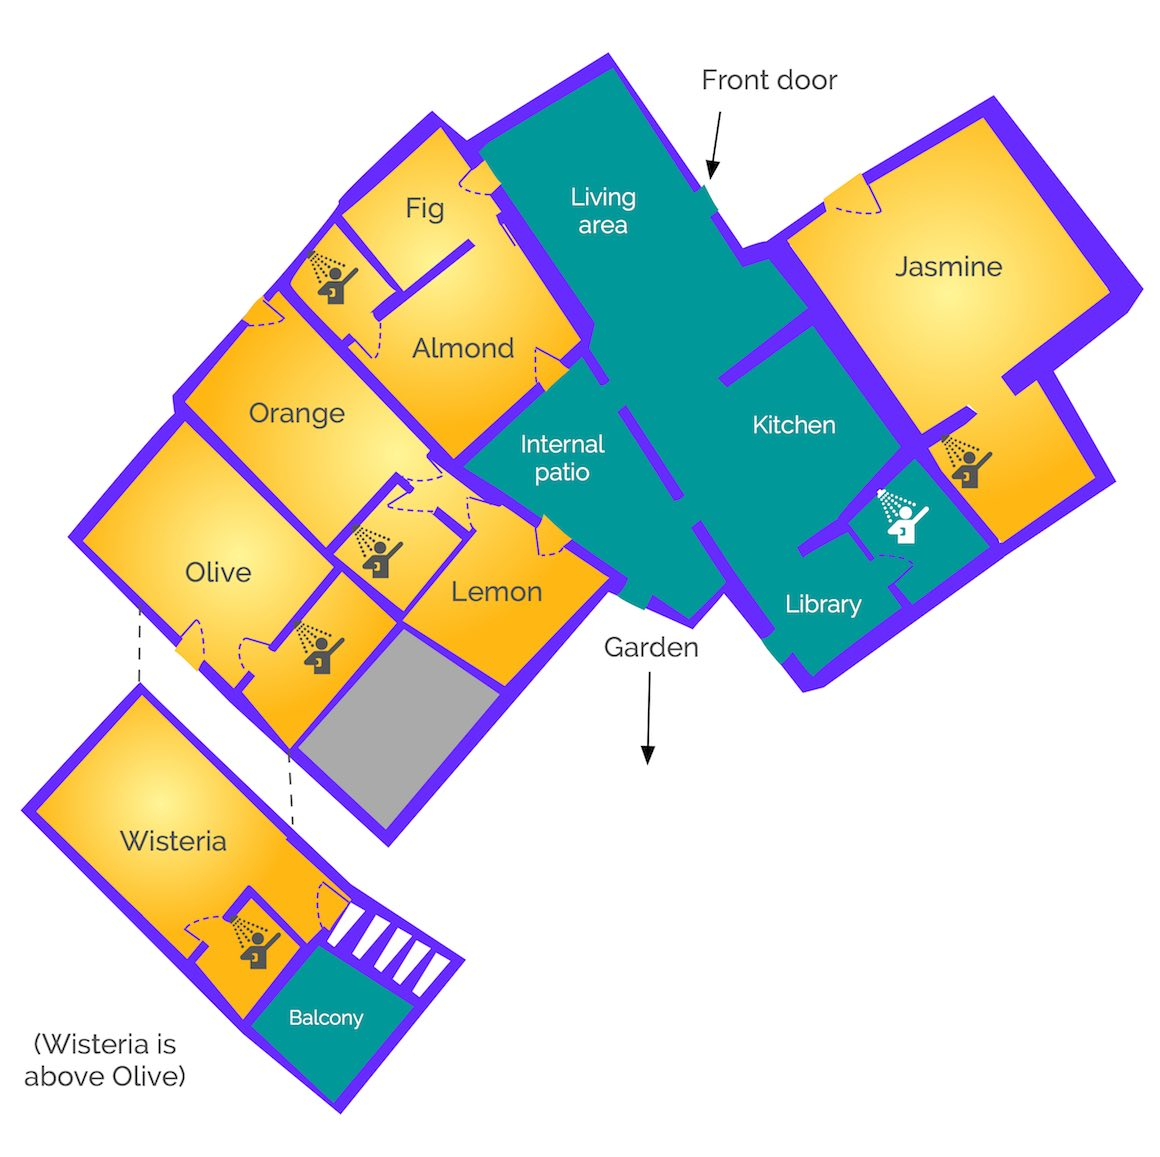 AHH Floorplan and rooms